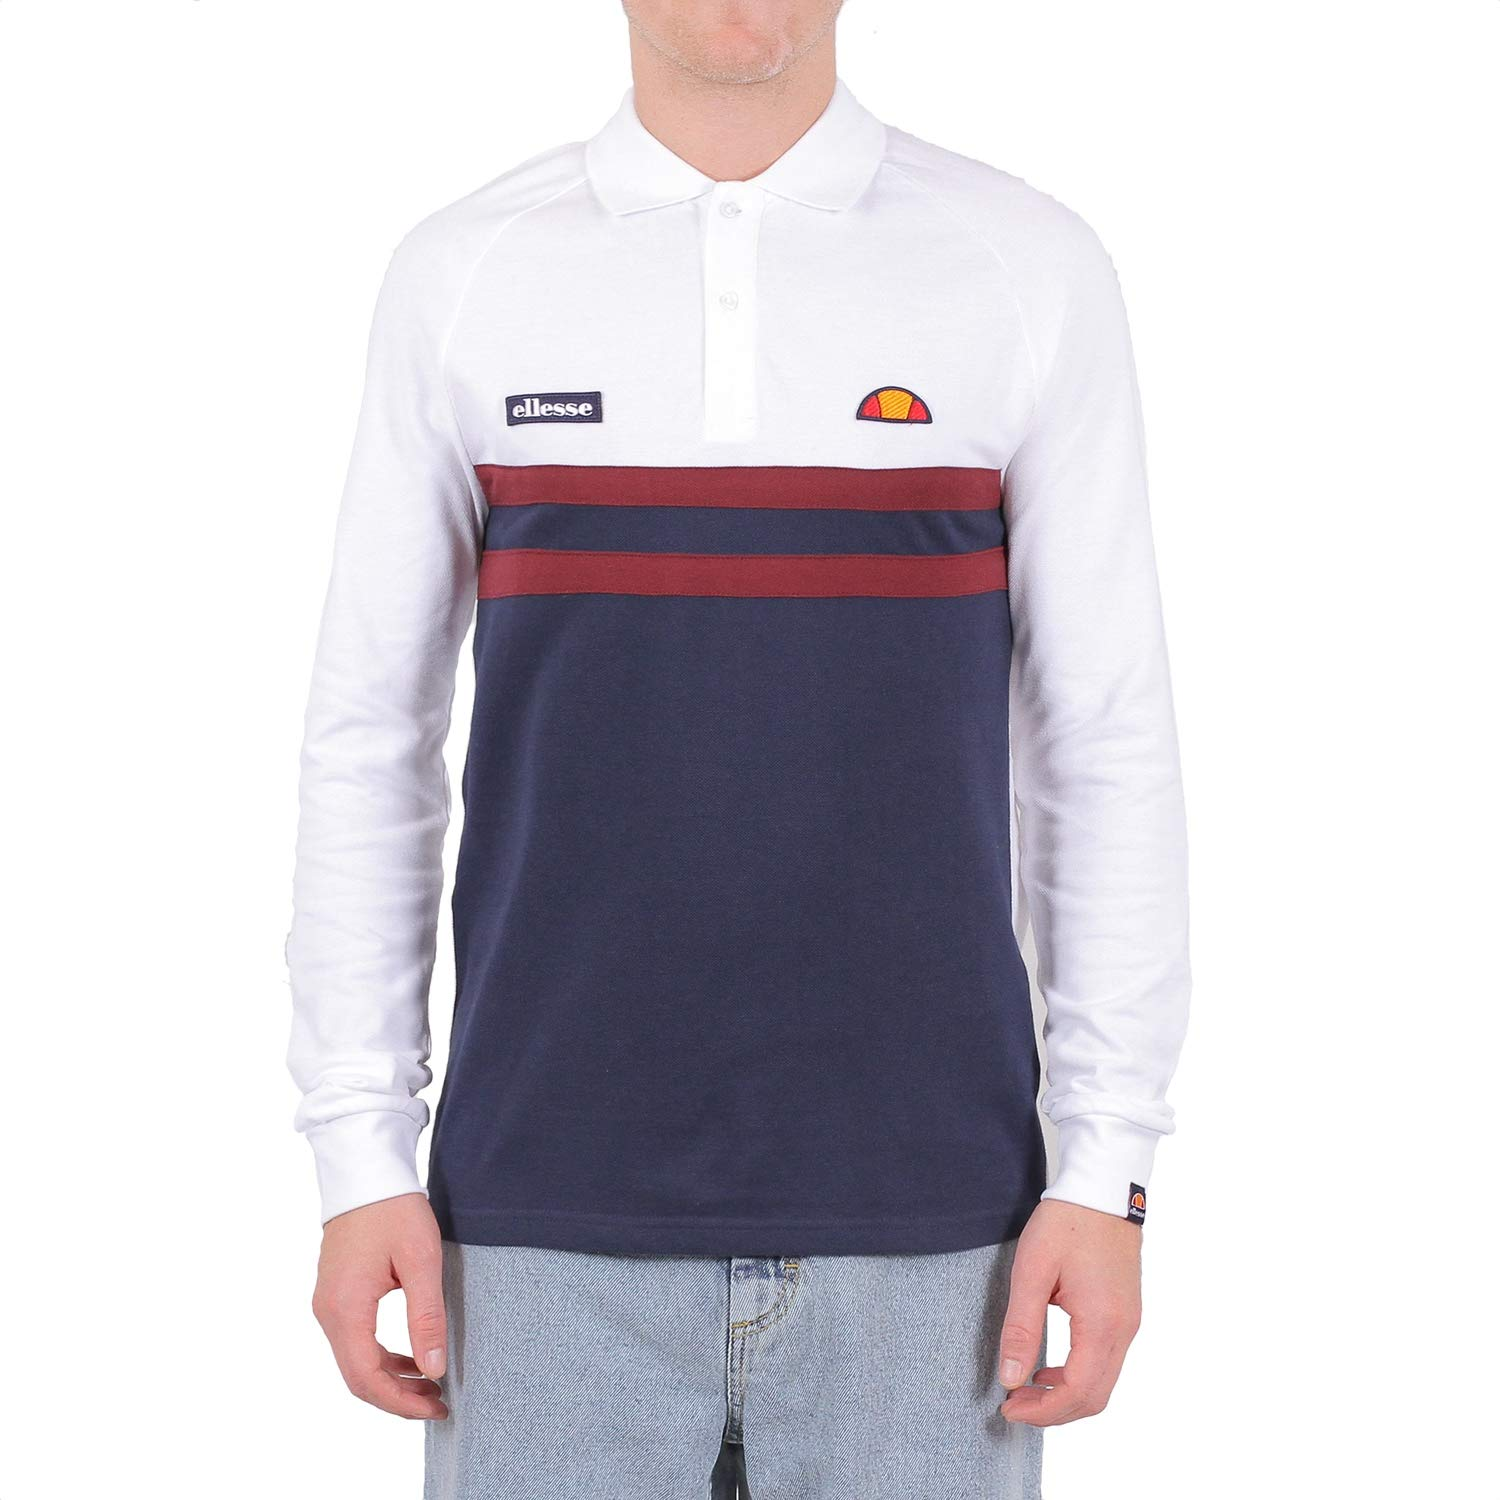 Ellesse Men Polo Shirt Lovaro Rugby Top: Amazon.es: Ropa y accesorios